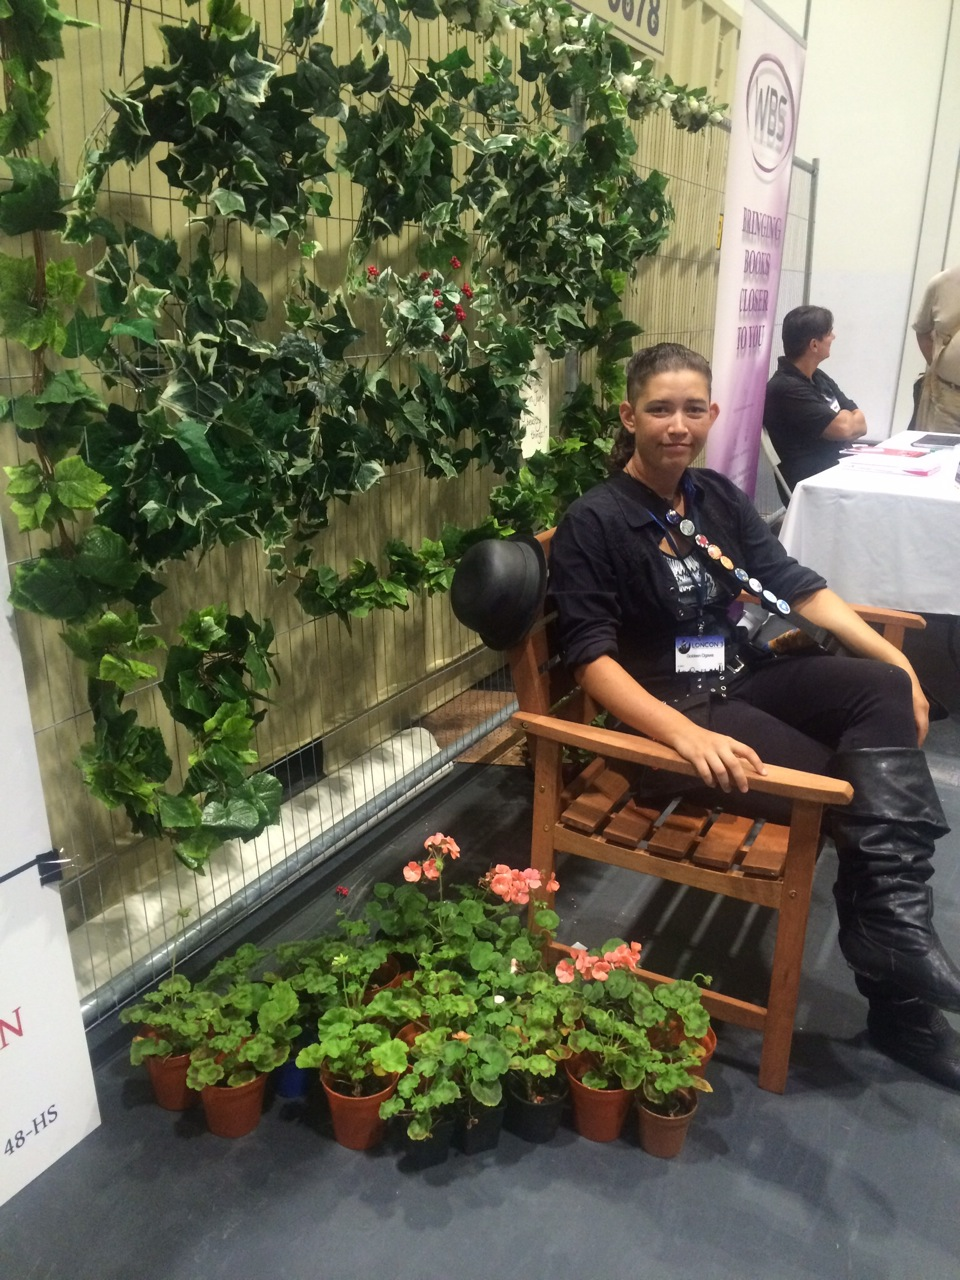 The author resting on the Diana Wynne Jones bench. Photo by the WM.